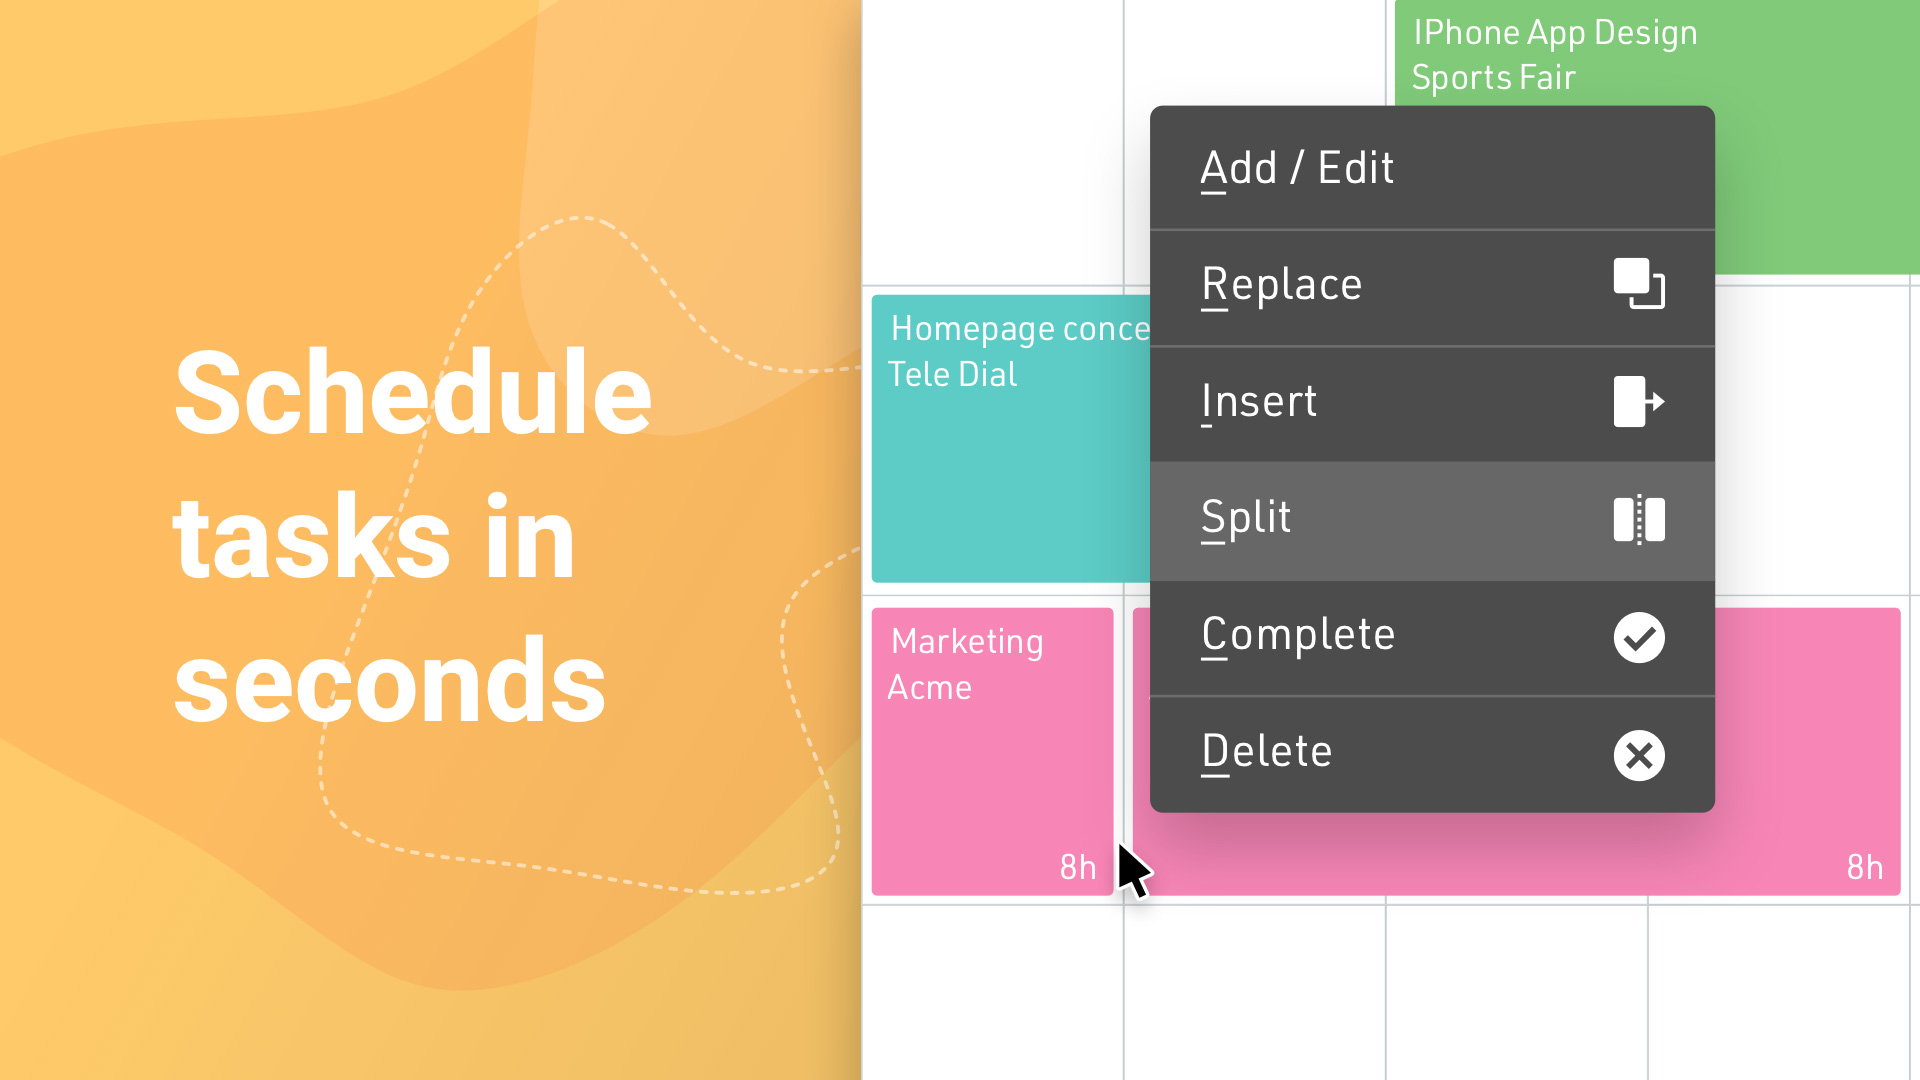 Float is a Resource Planning Tool used by the World's Top Creative Teams